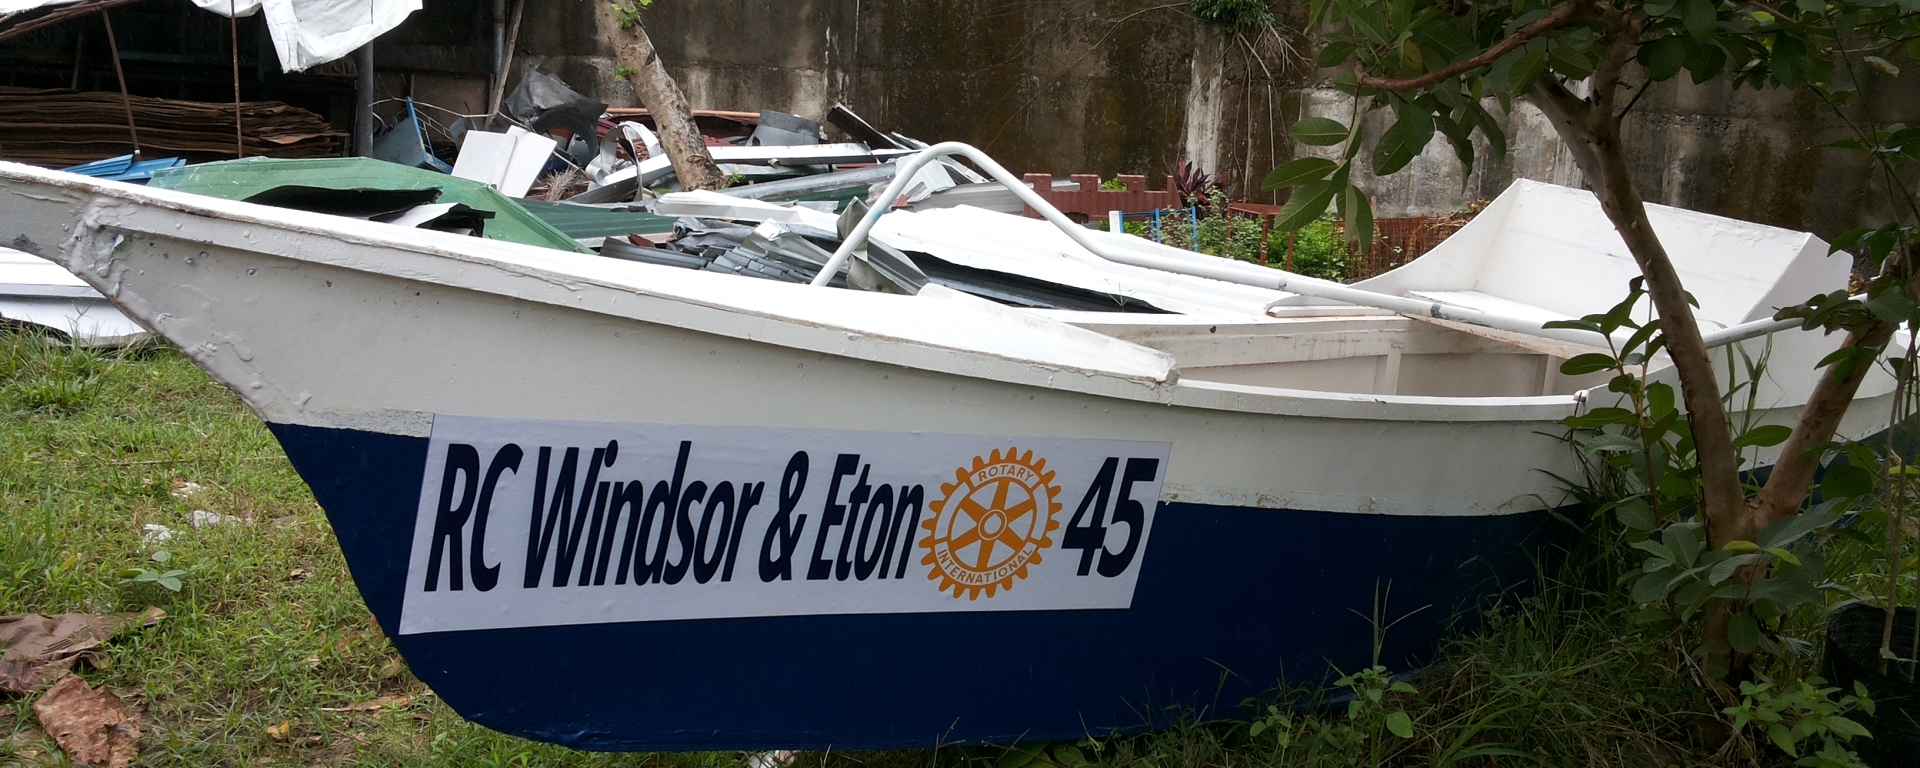 Rotary Club Windsor and Eton ONE BOAT 45